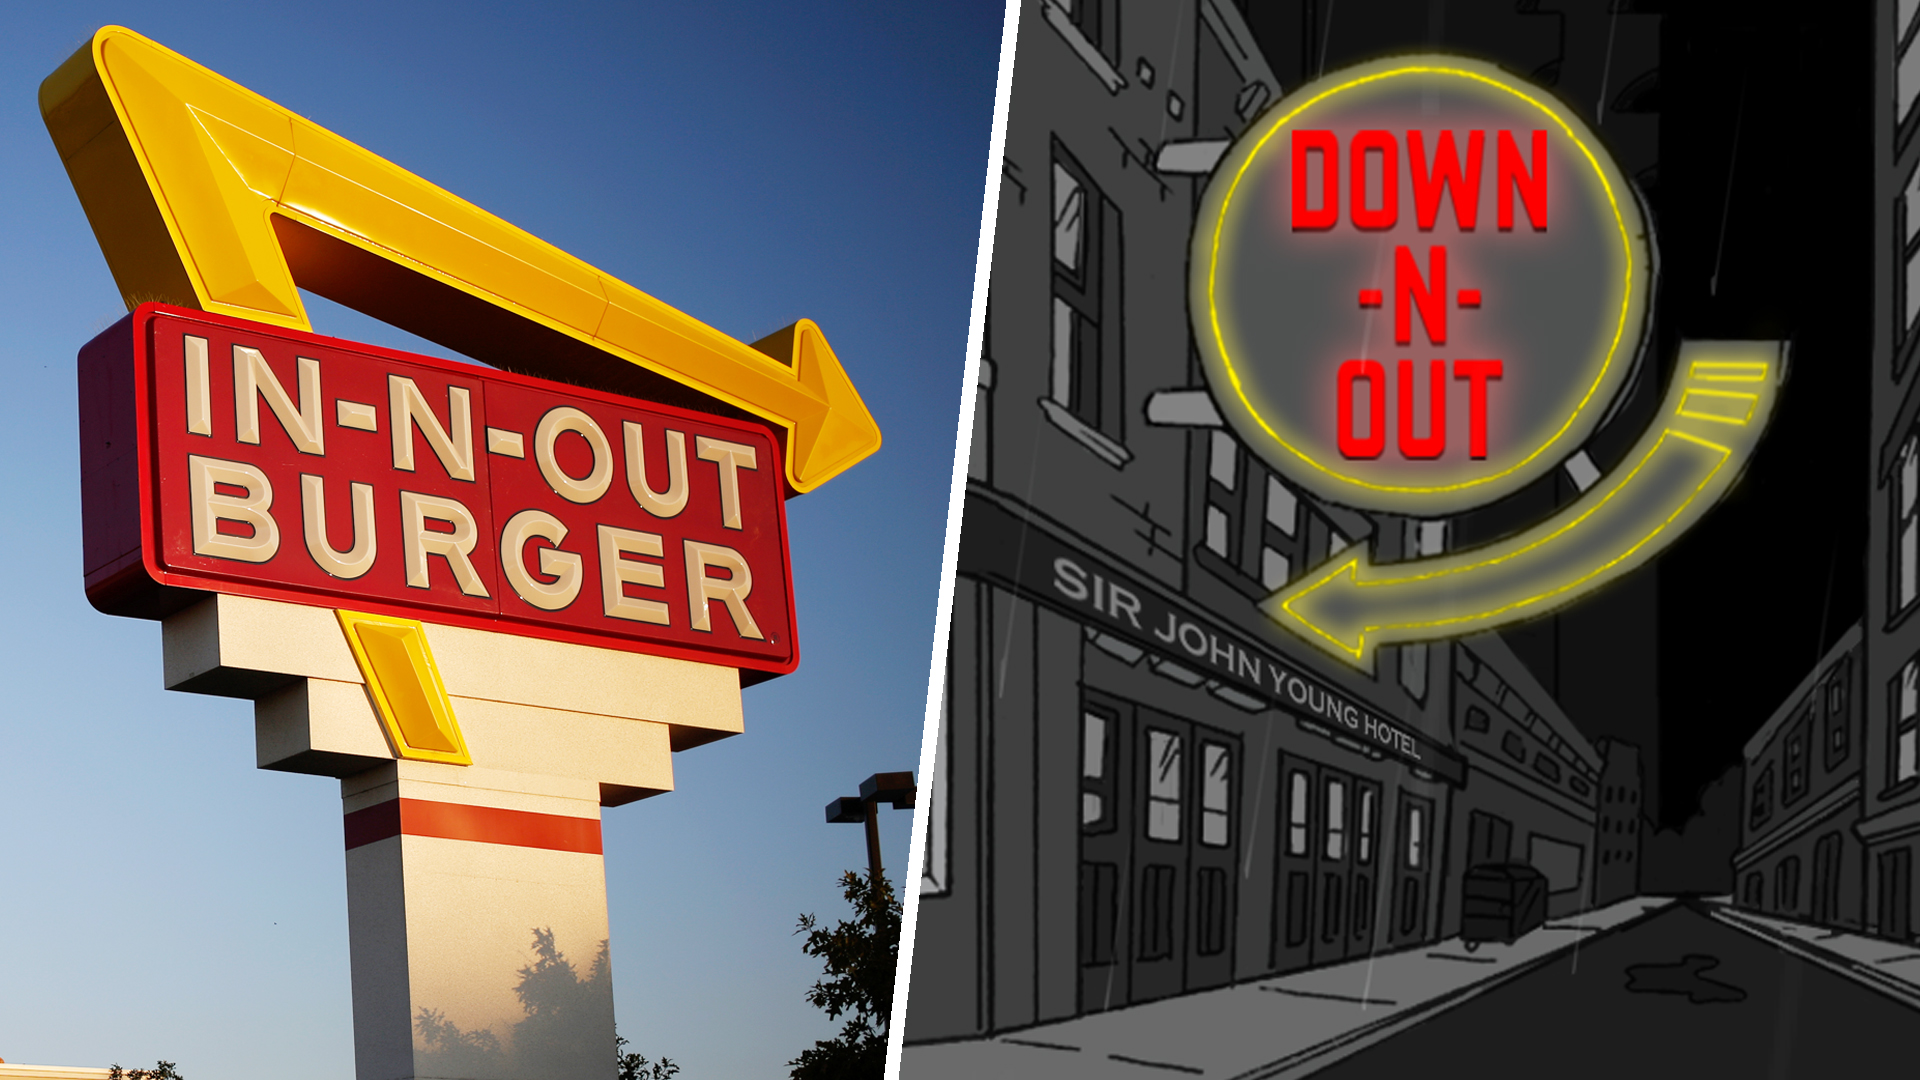 In-N-Out sues Australian burger joint Down N' Out - TODAY.com